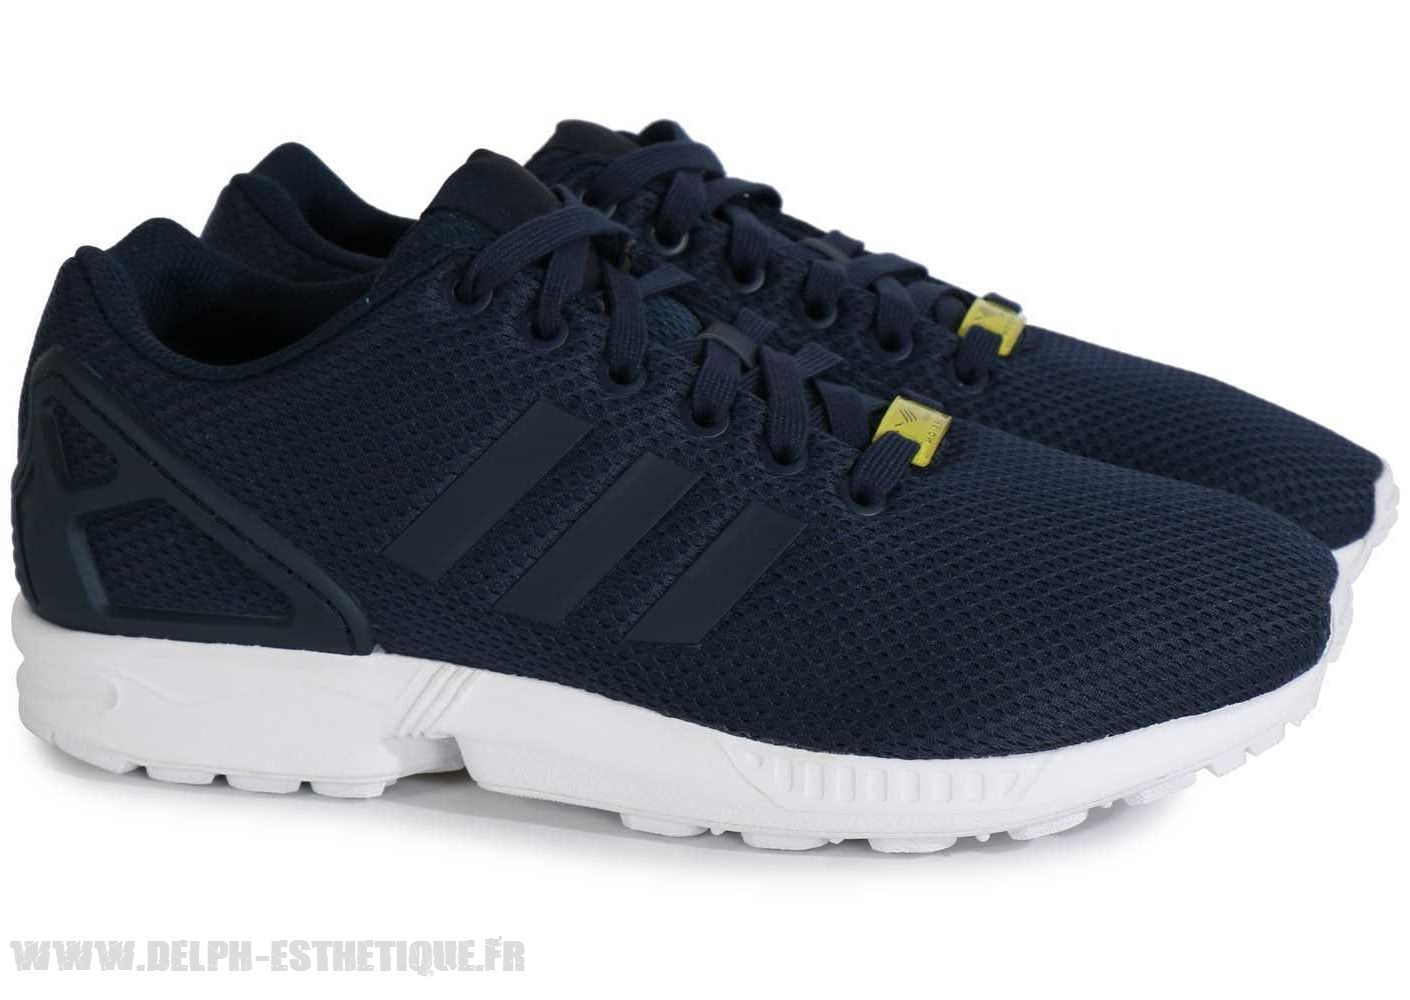 best value 3a03d c9062 adidas zx flux homme noir